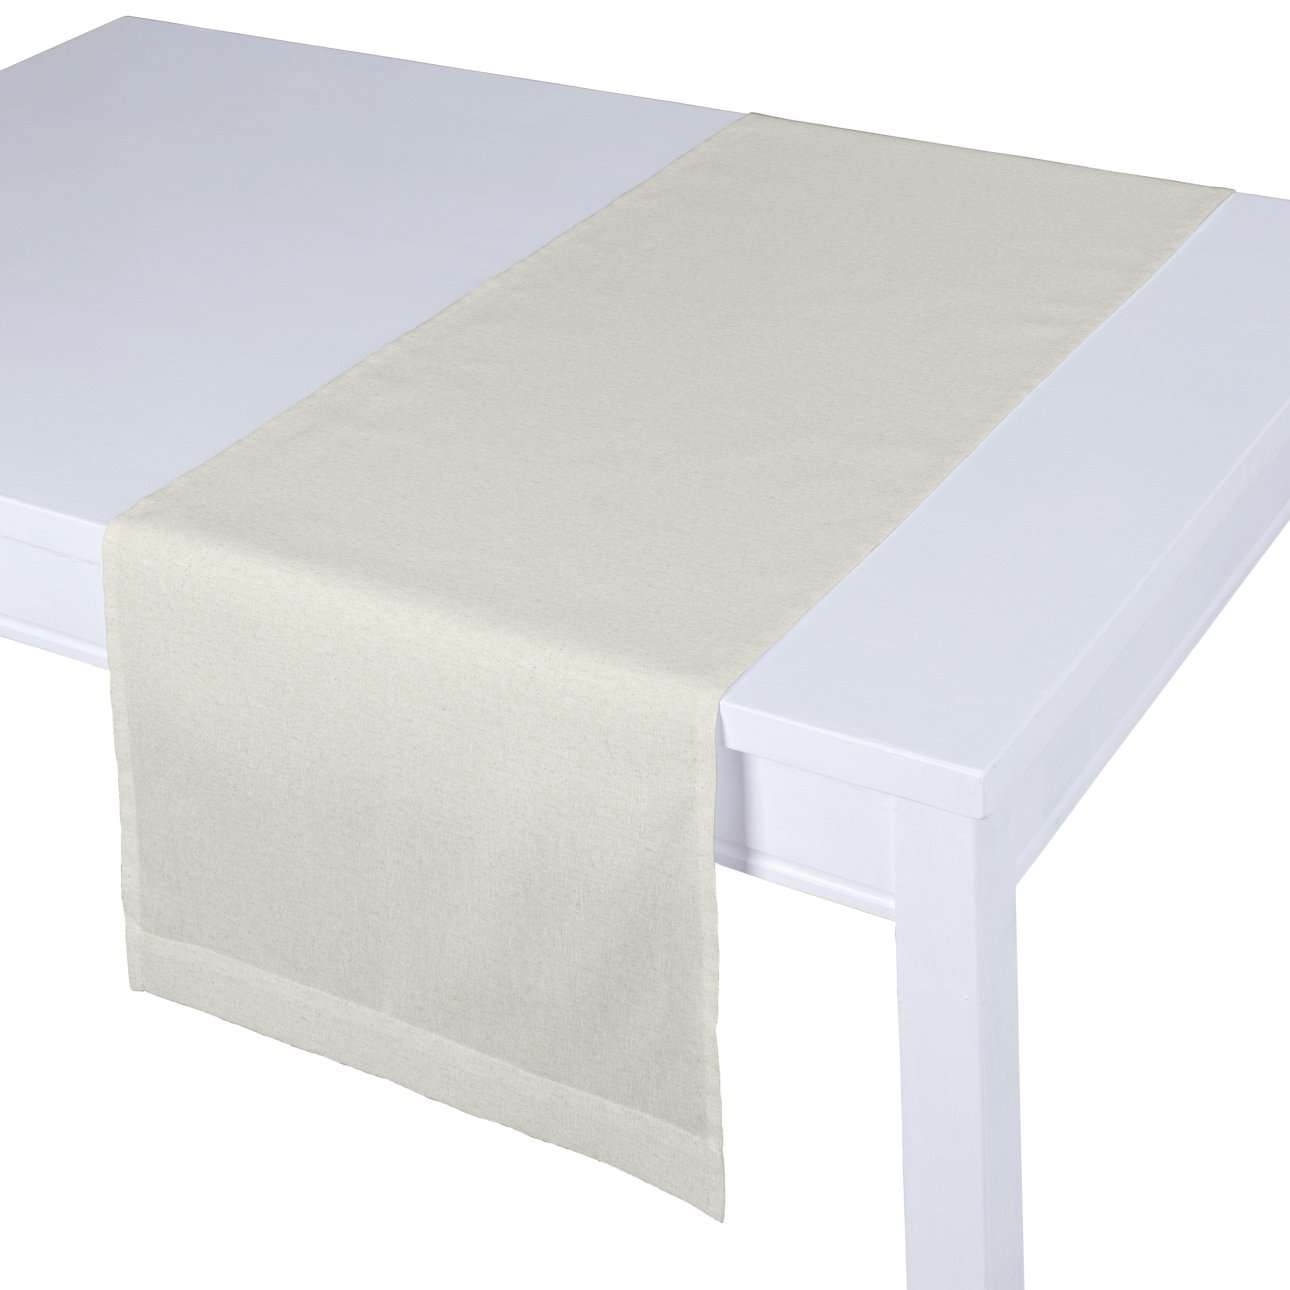 Table runner in collection Loneta , fabric: 133-01